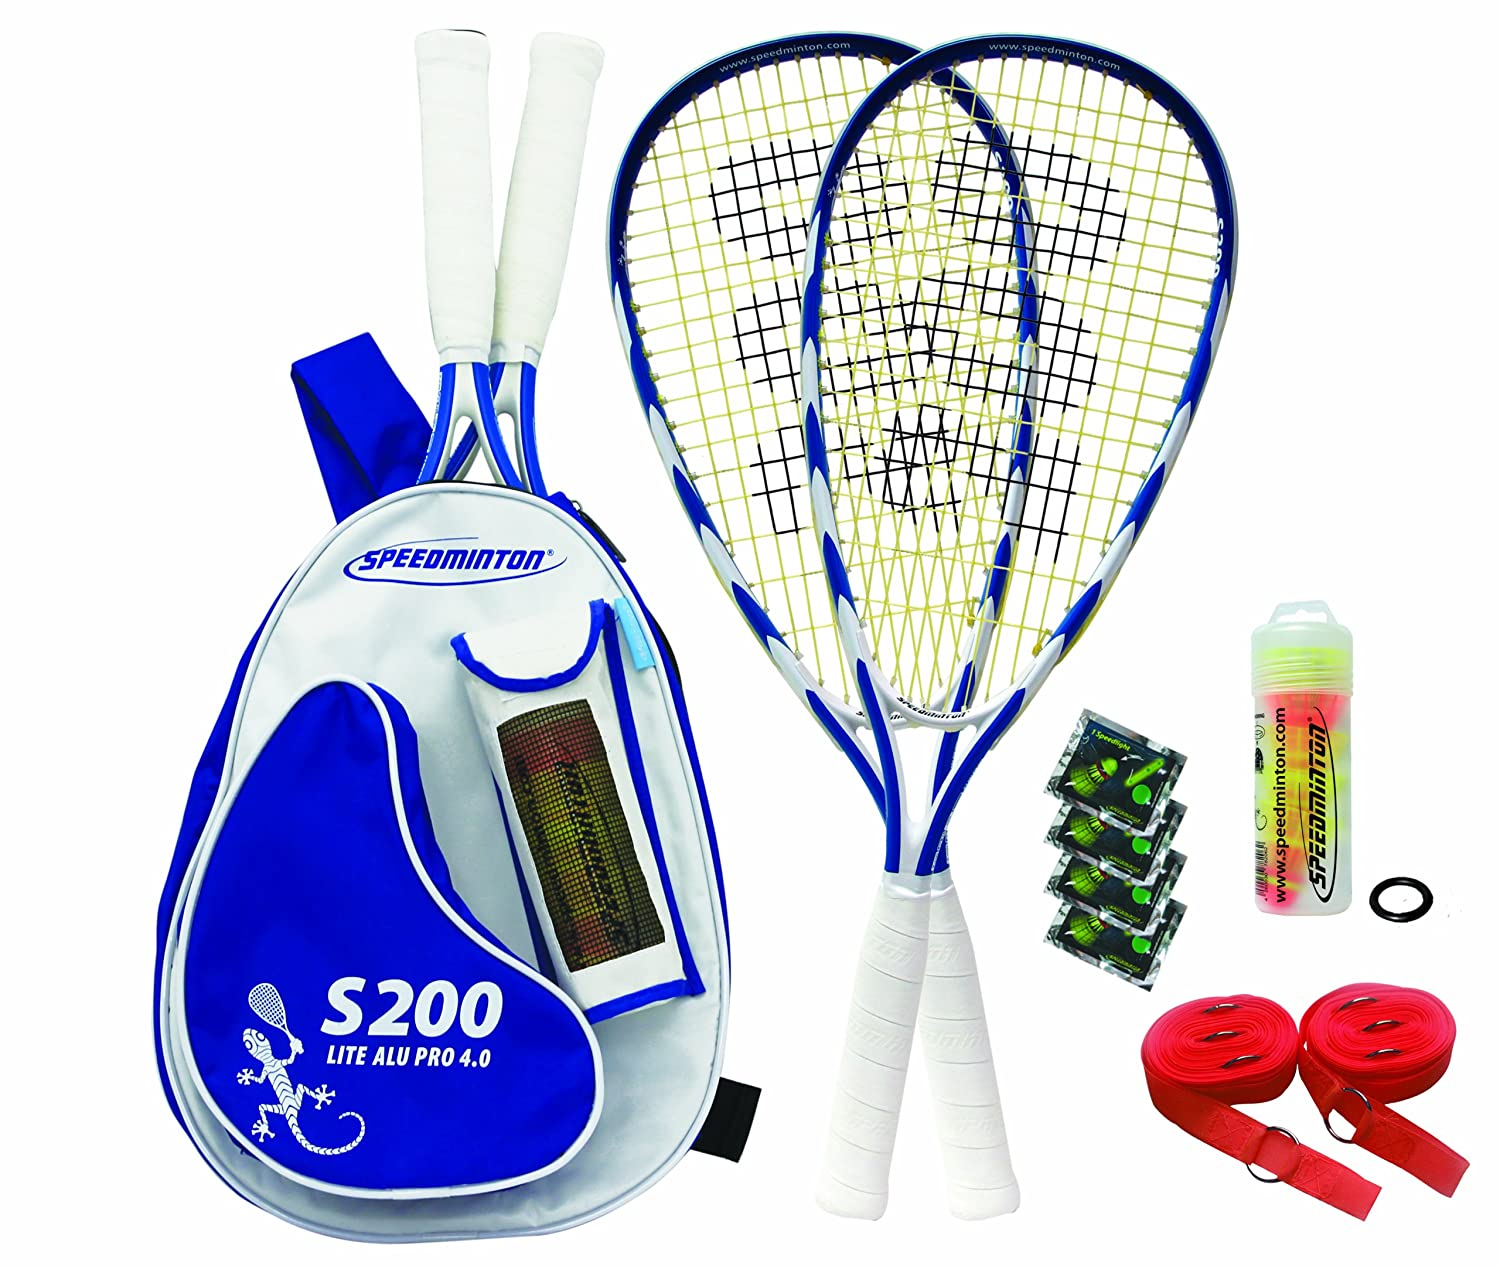 Speedminton Speedminton Set (incl. Easycourt) 400080